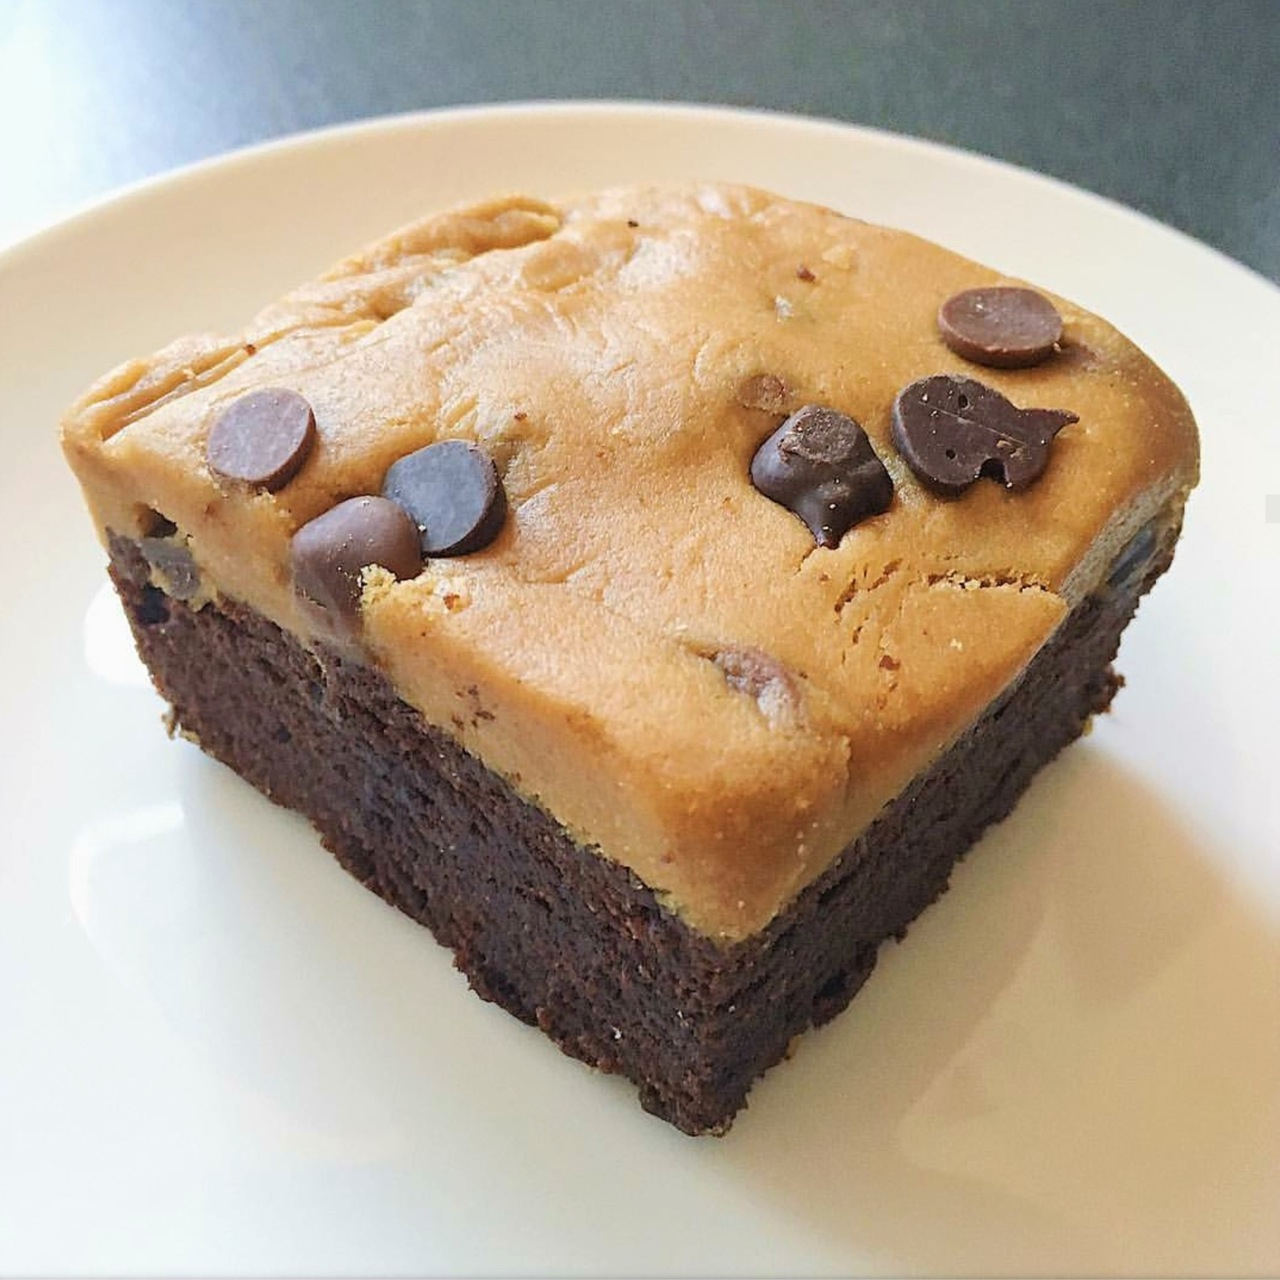 https://i1.wp.com/fatgayvegan.com/wp-content/uploads/2019/06/Cookie-Dough-Brownie-12-2.jpg?fit=1280%2C1280